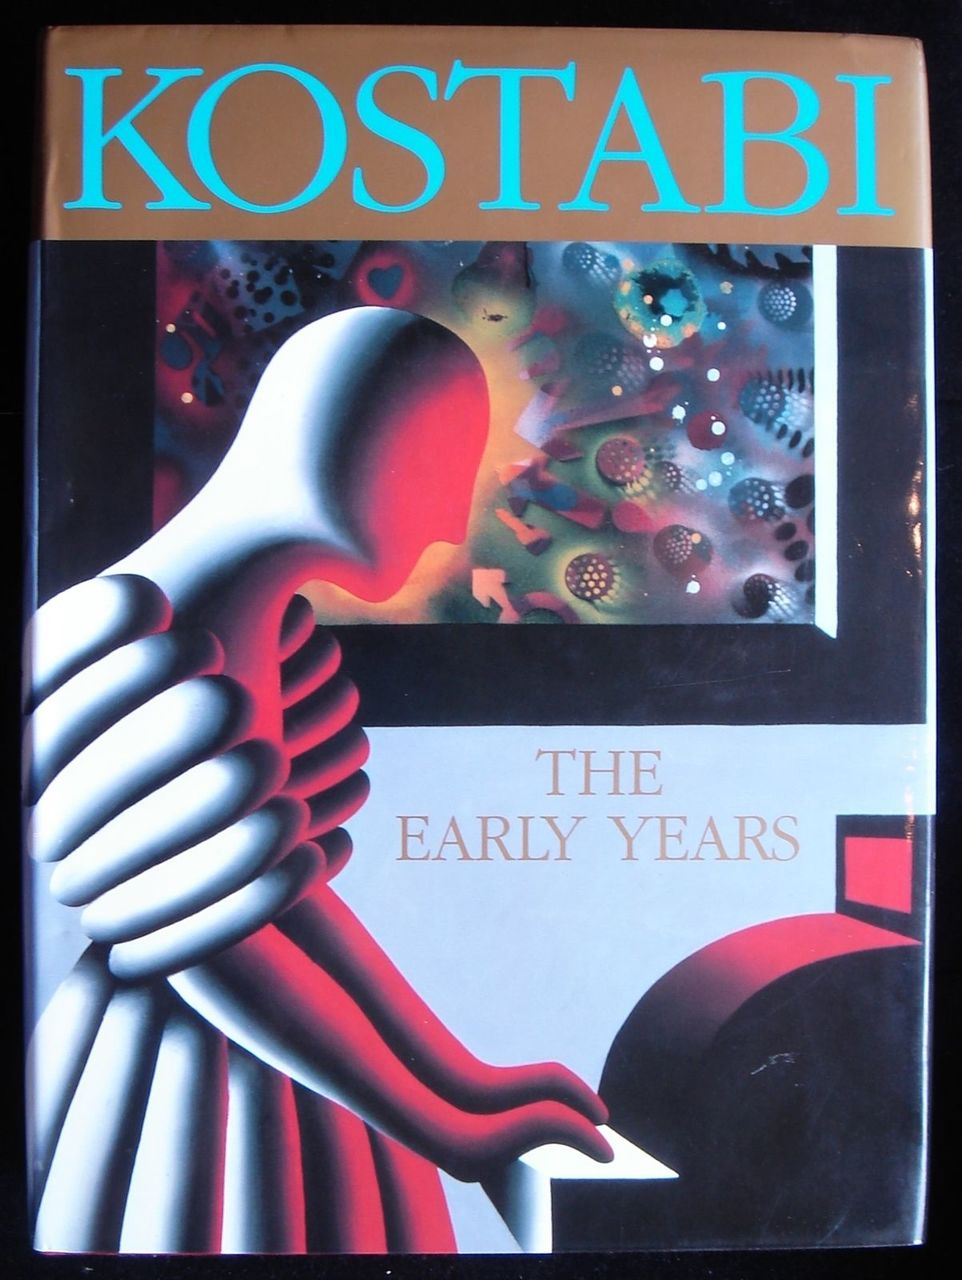 KALEV MARK KOSTABI - THE EARLY YEARS, by Basil Chattington 1990 First Edition